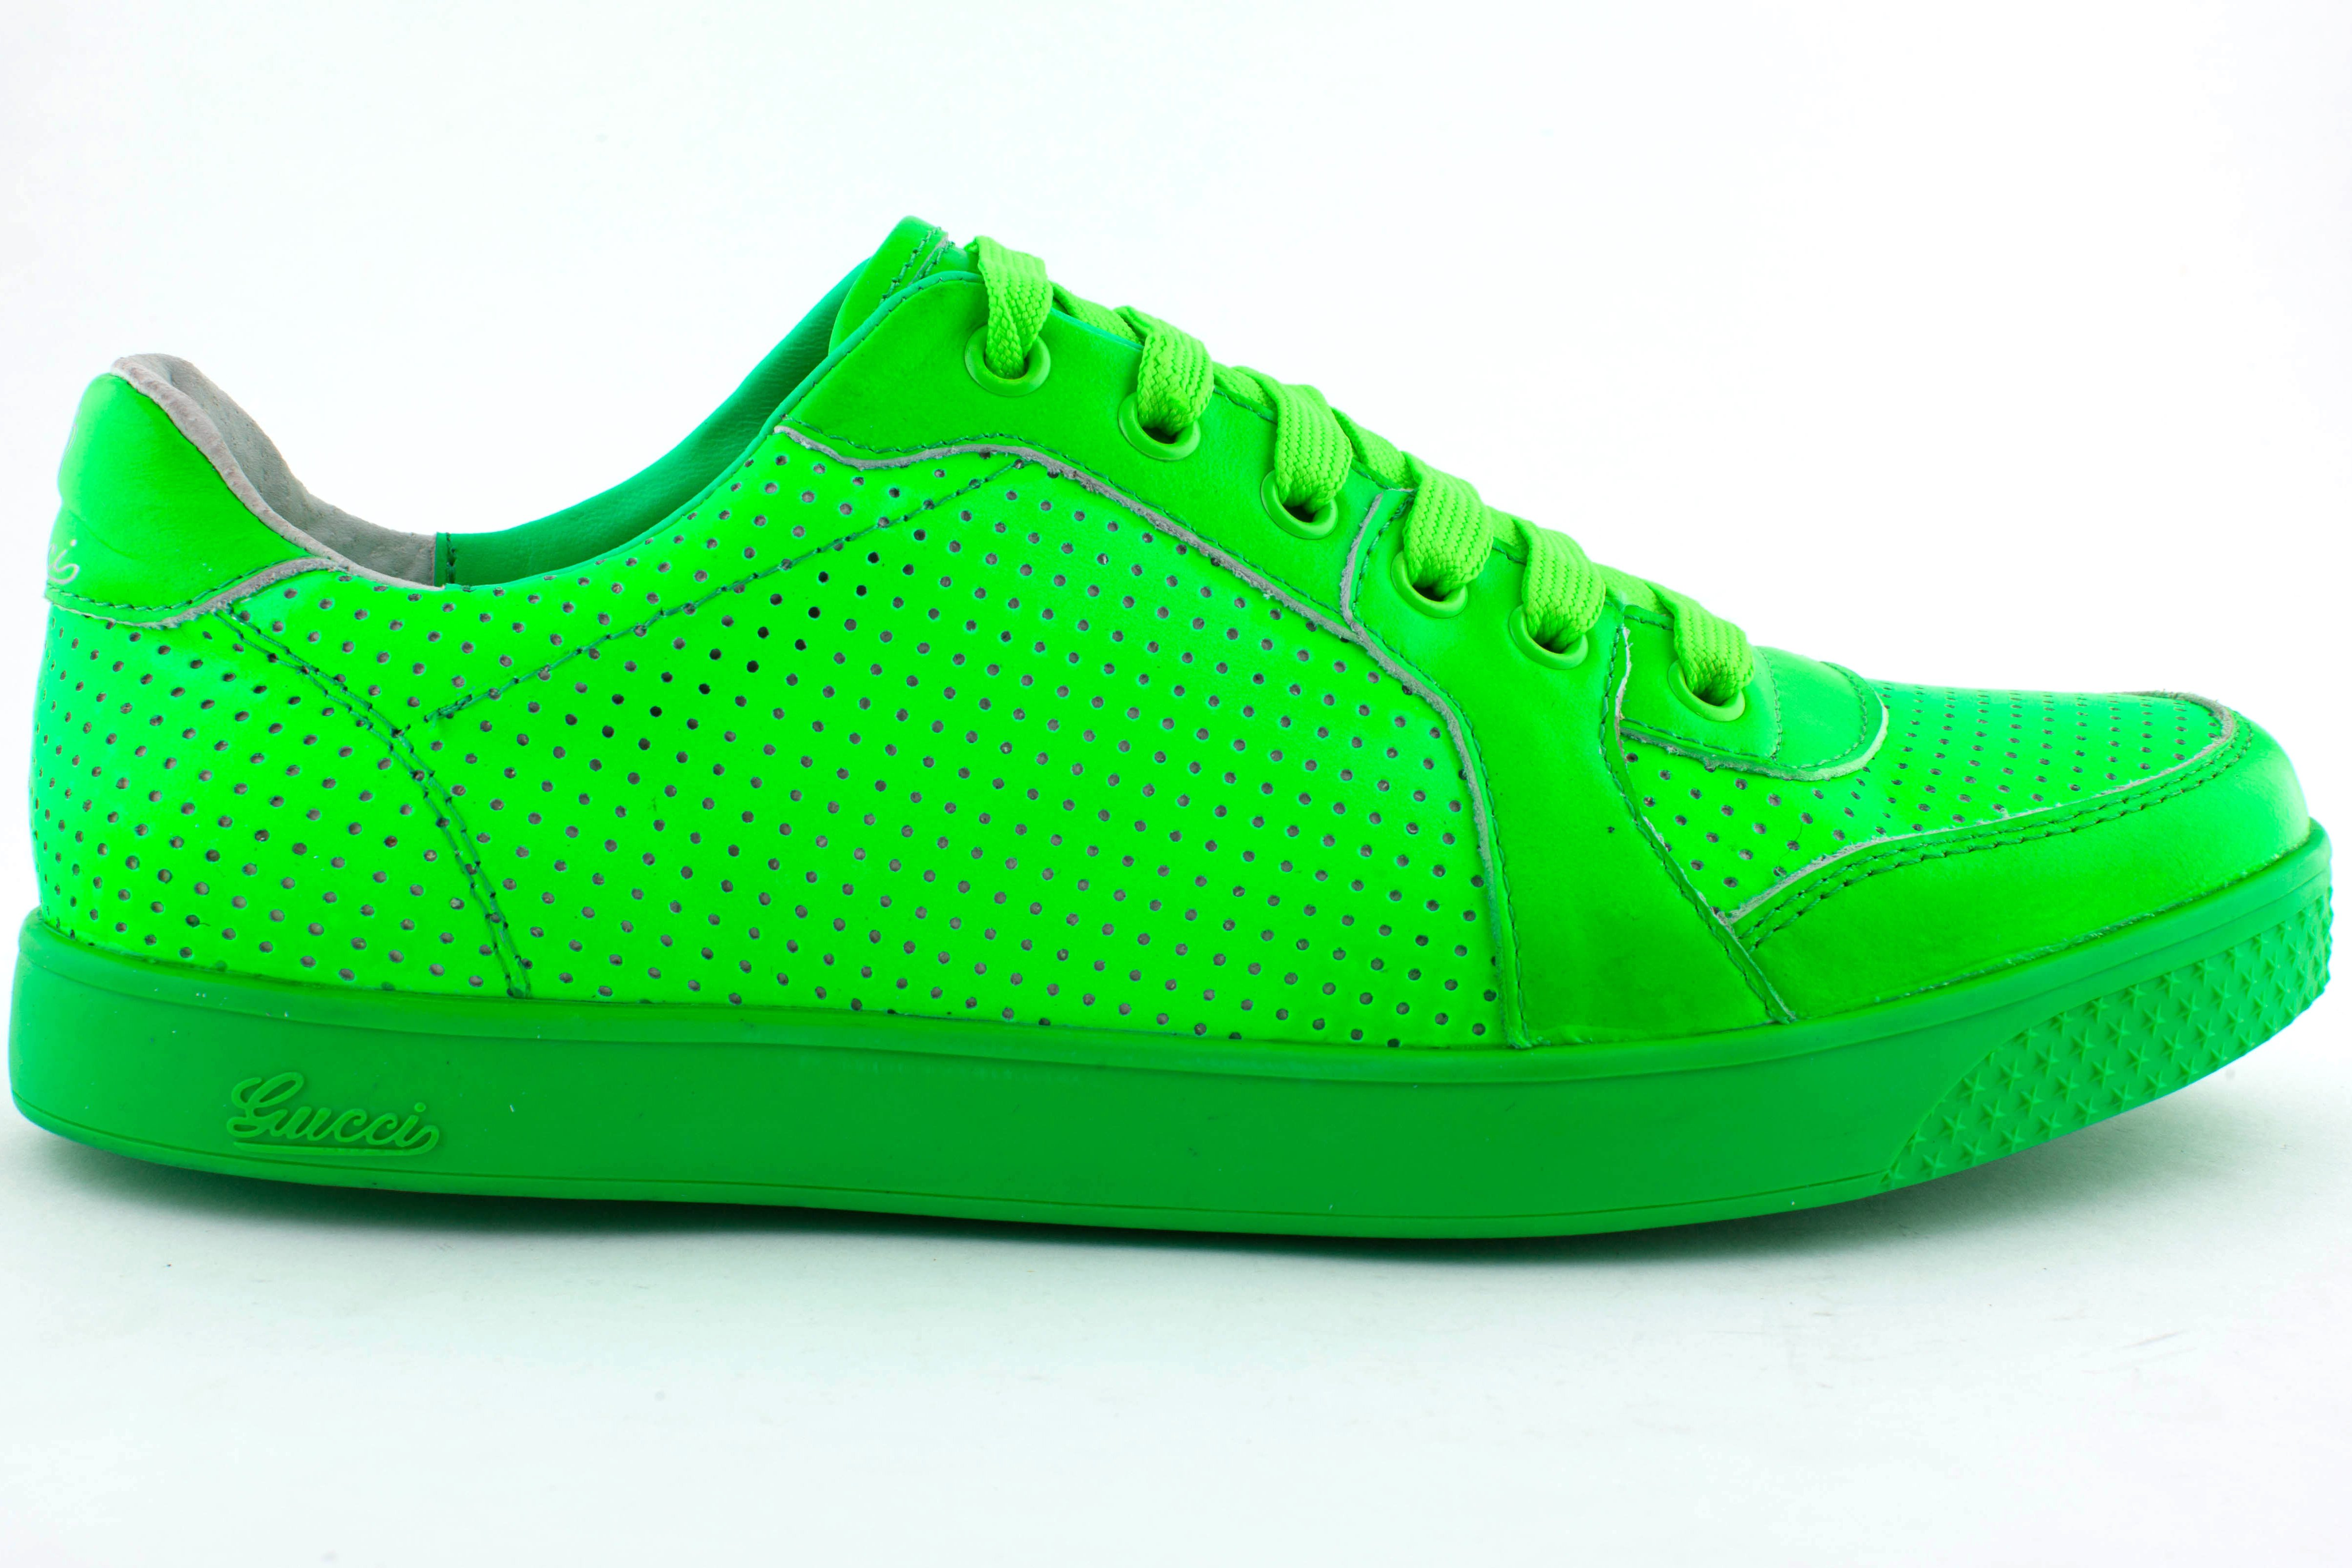 Gucci Neon Low